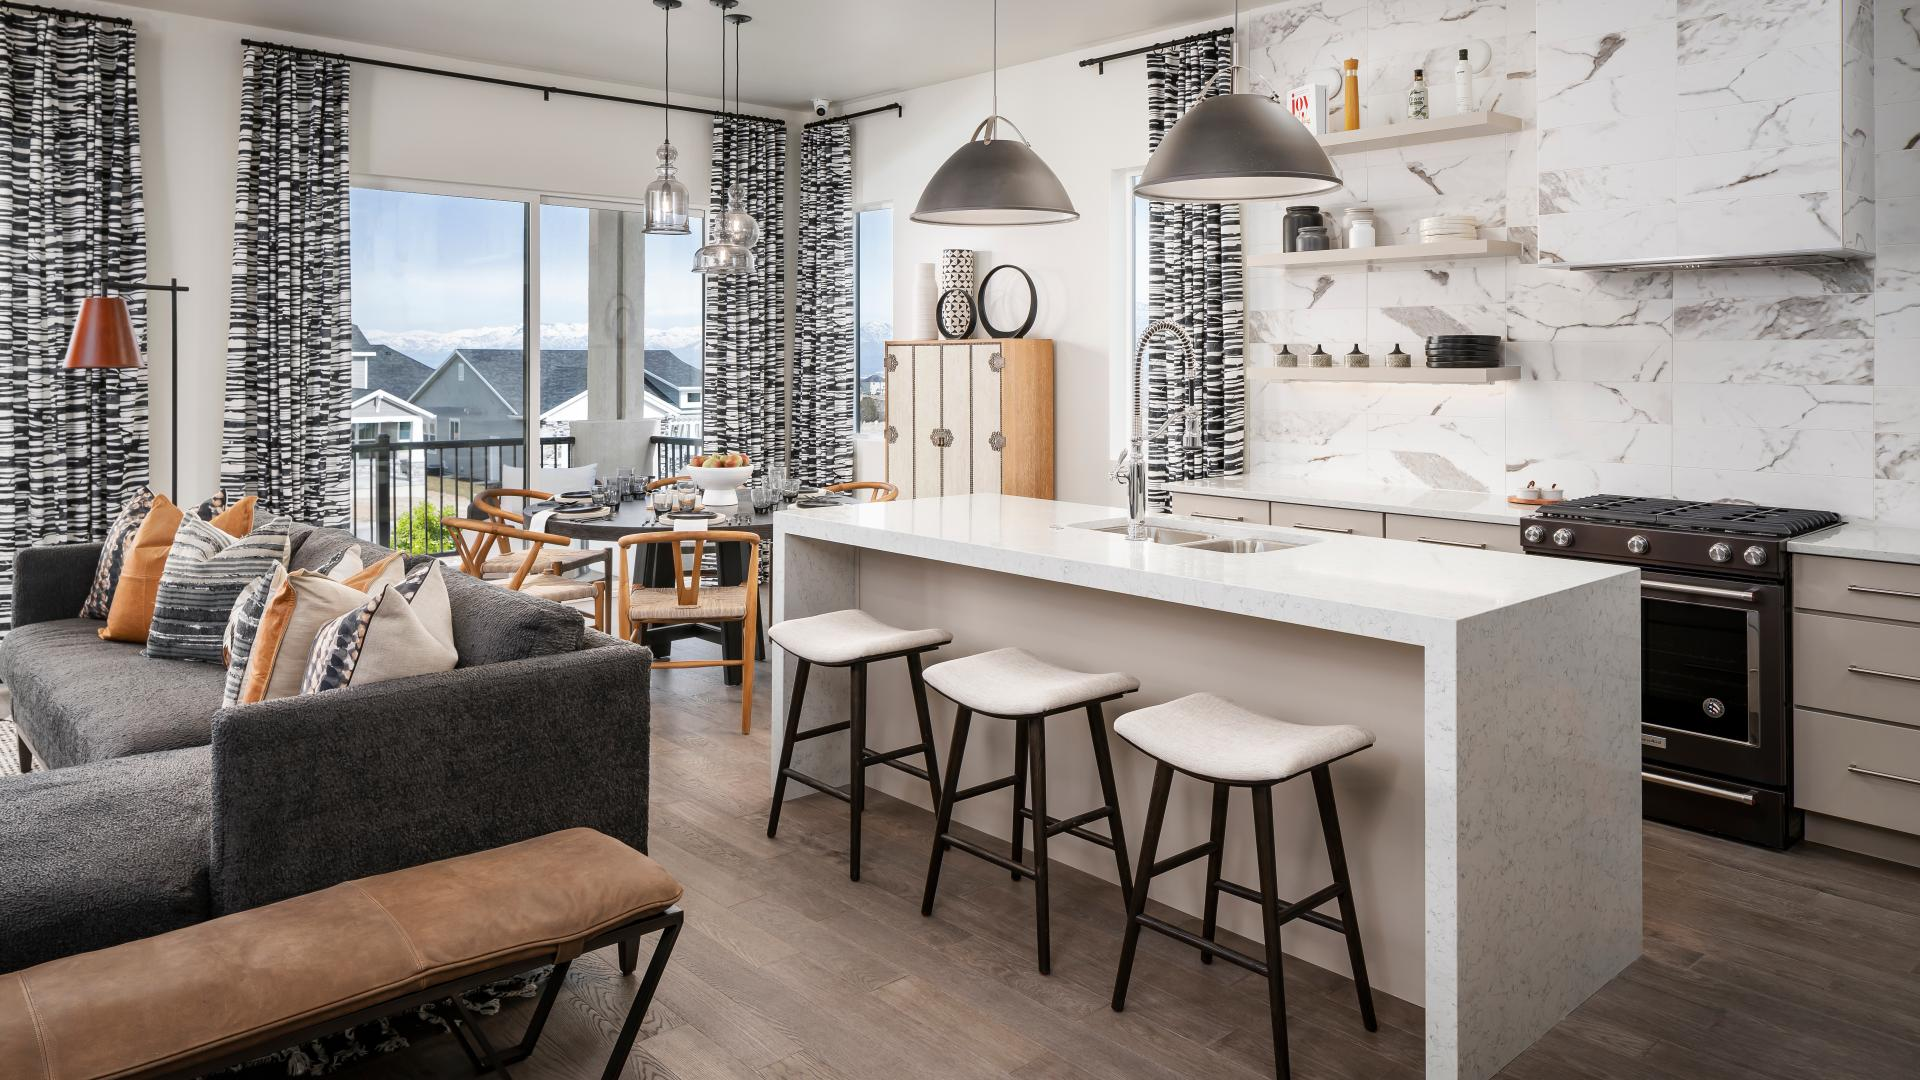 Open concept great rooms and beautiful kitchens with large center islands